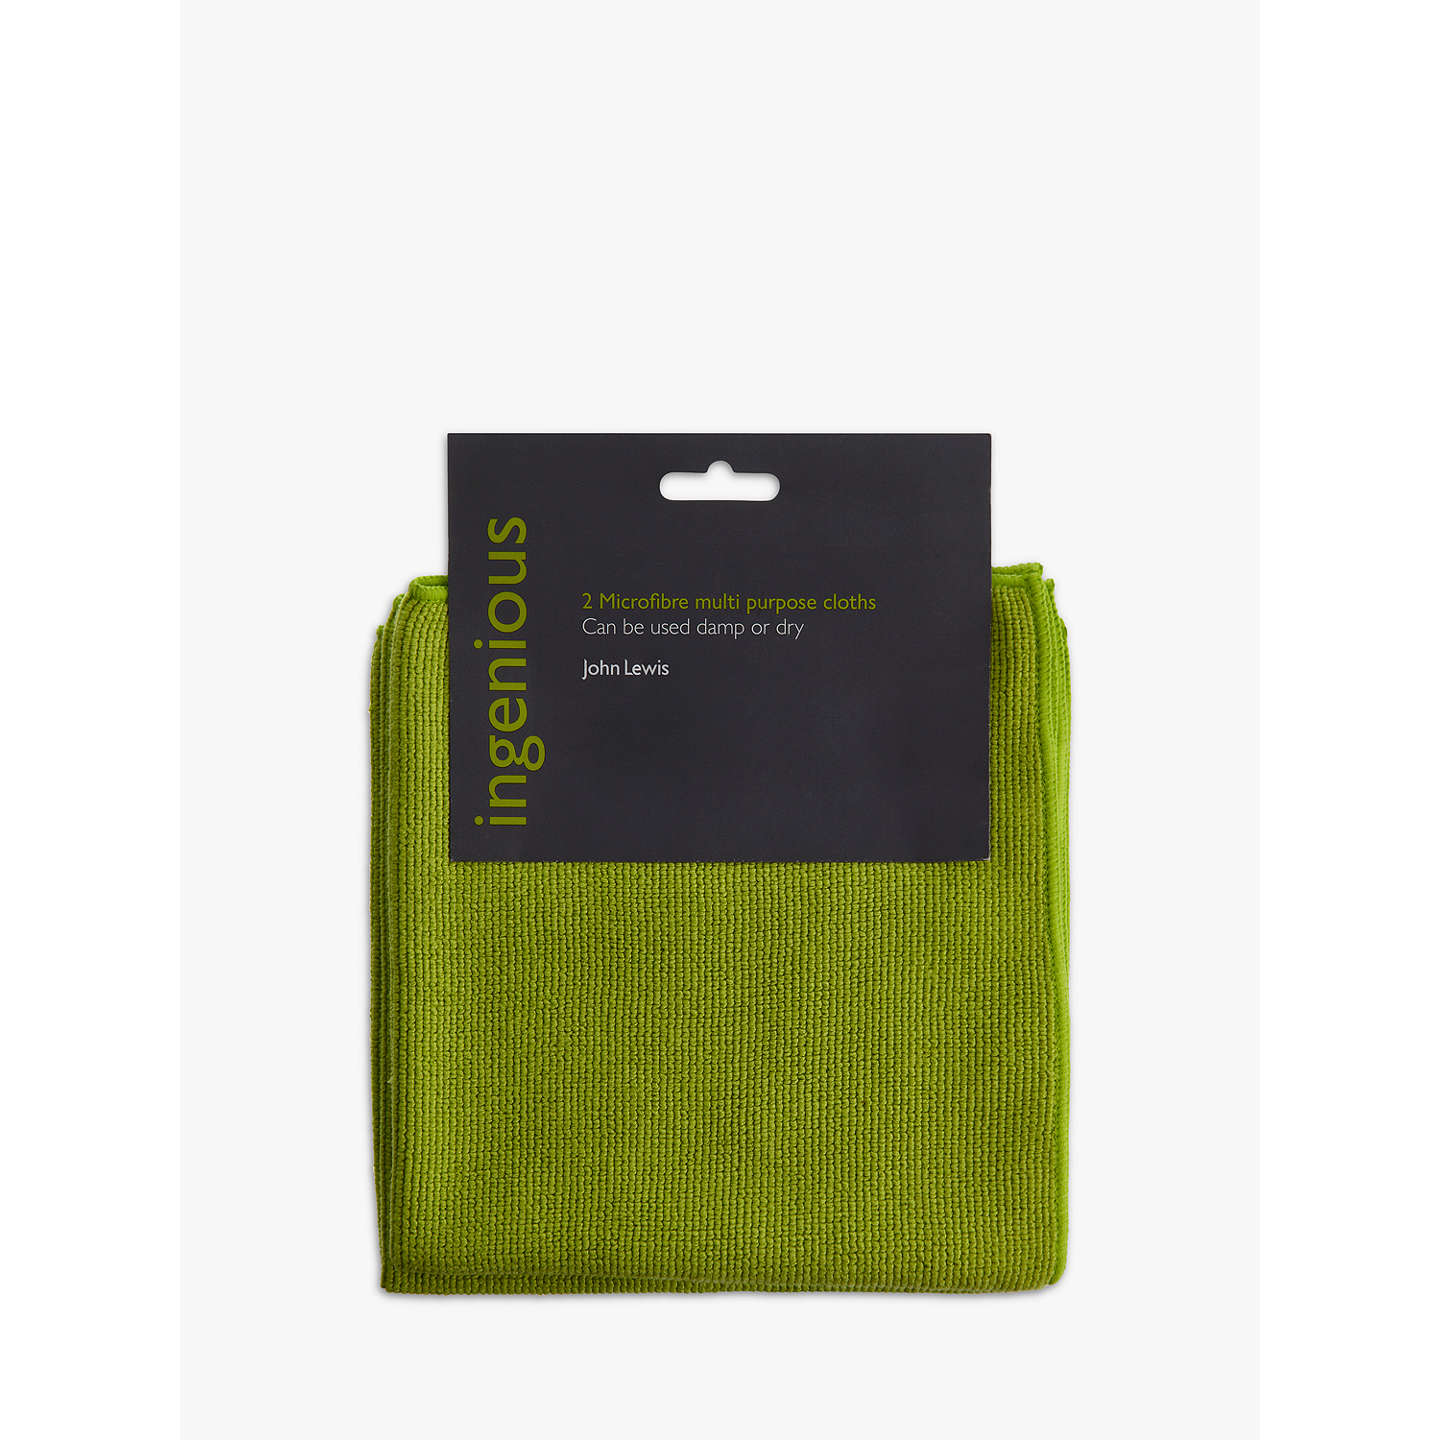 John Lewis Ingenious Microfibre Cleaning Cloths, Pack of 2 at John Lewis